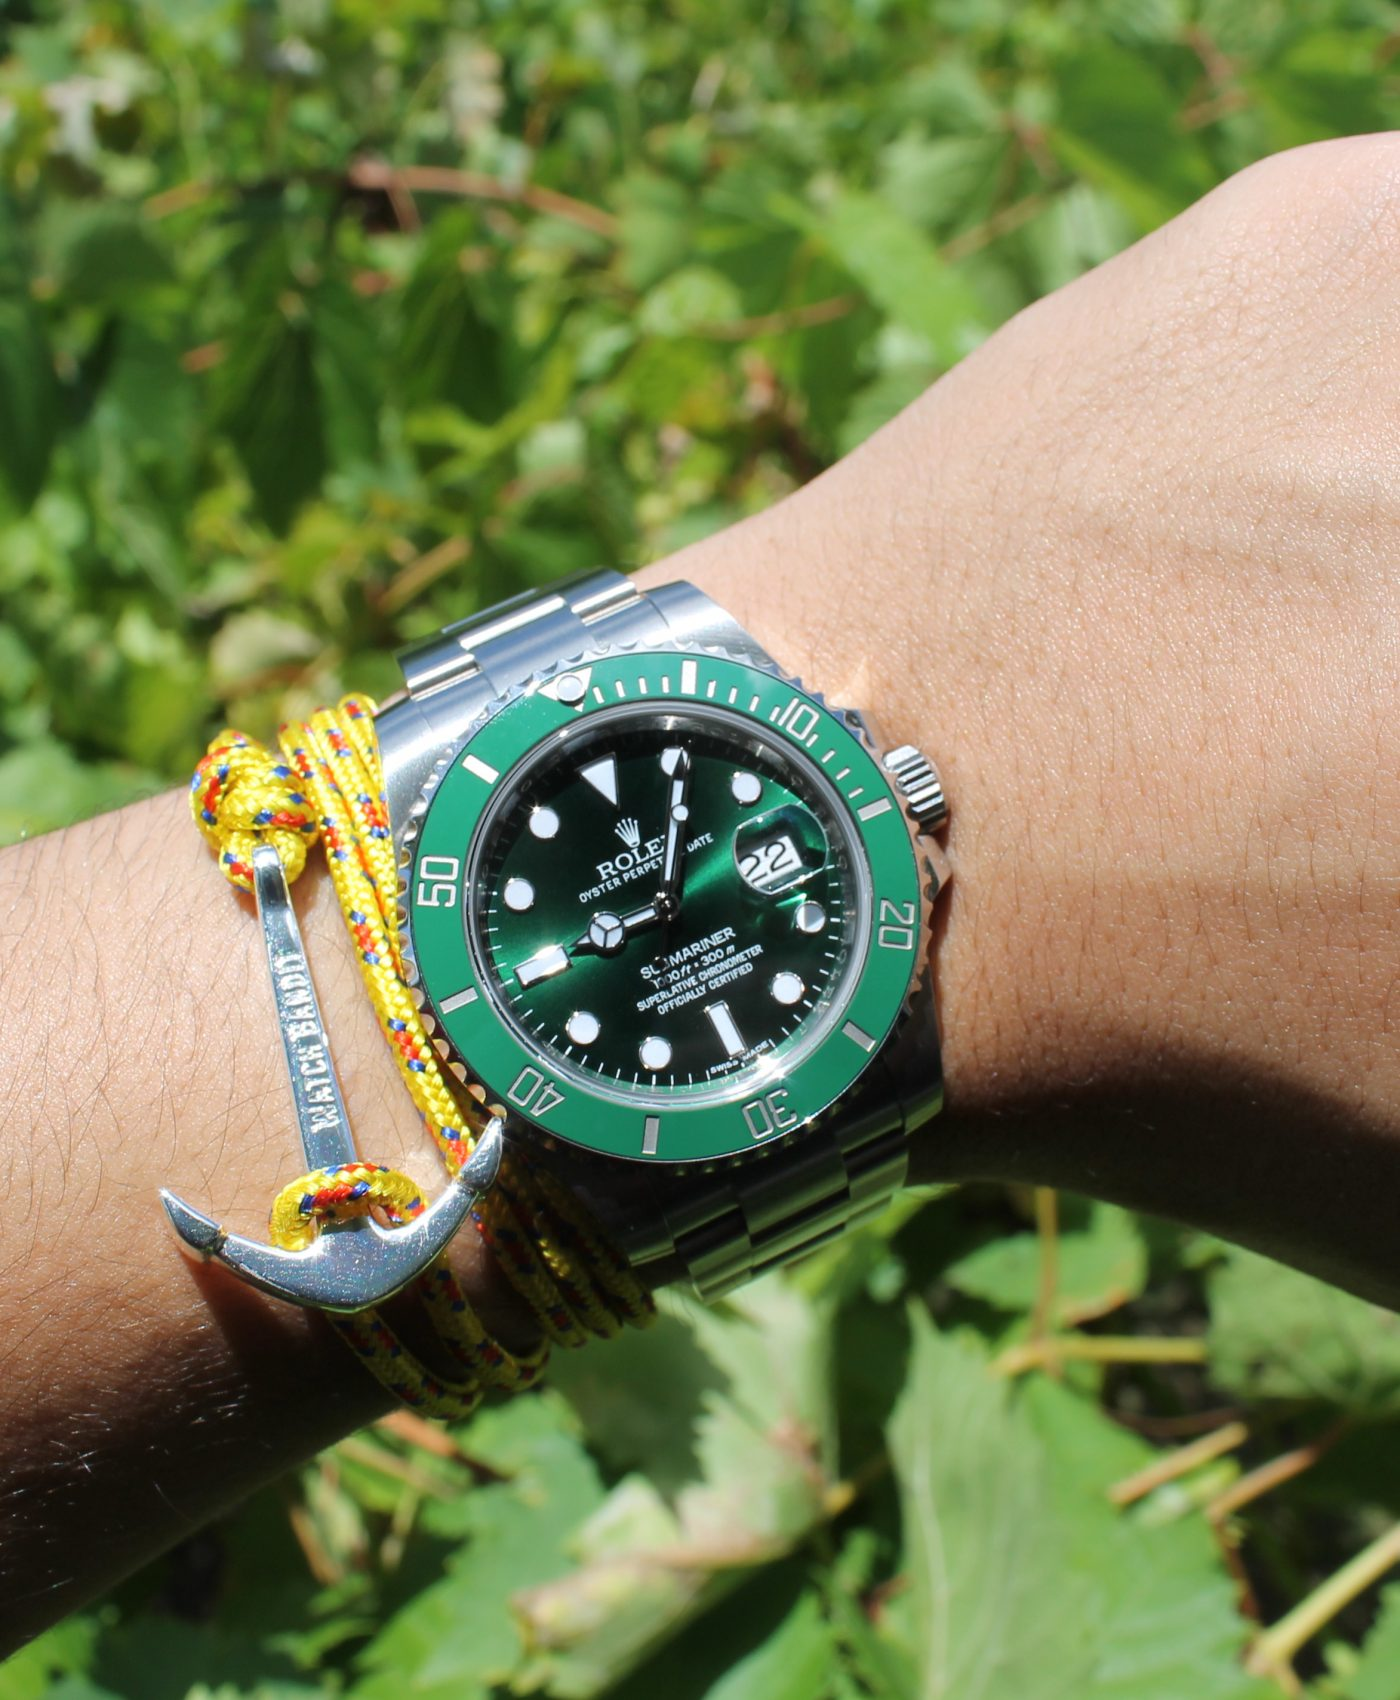 Rolex Submariner and anchor bracelet by abewd